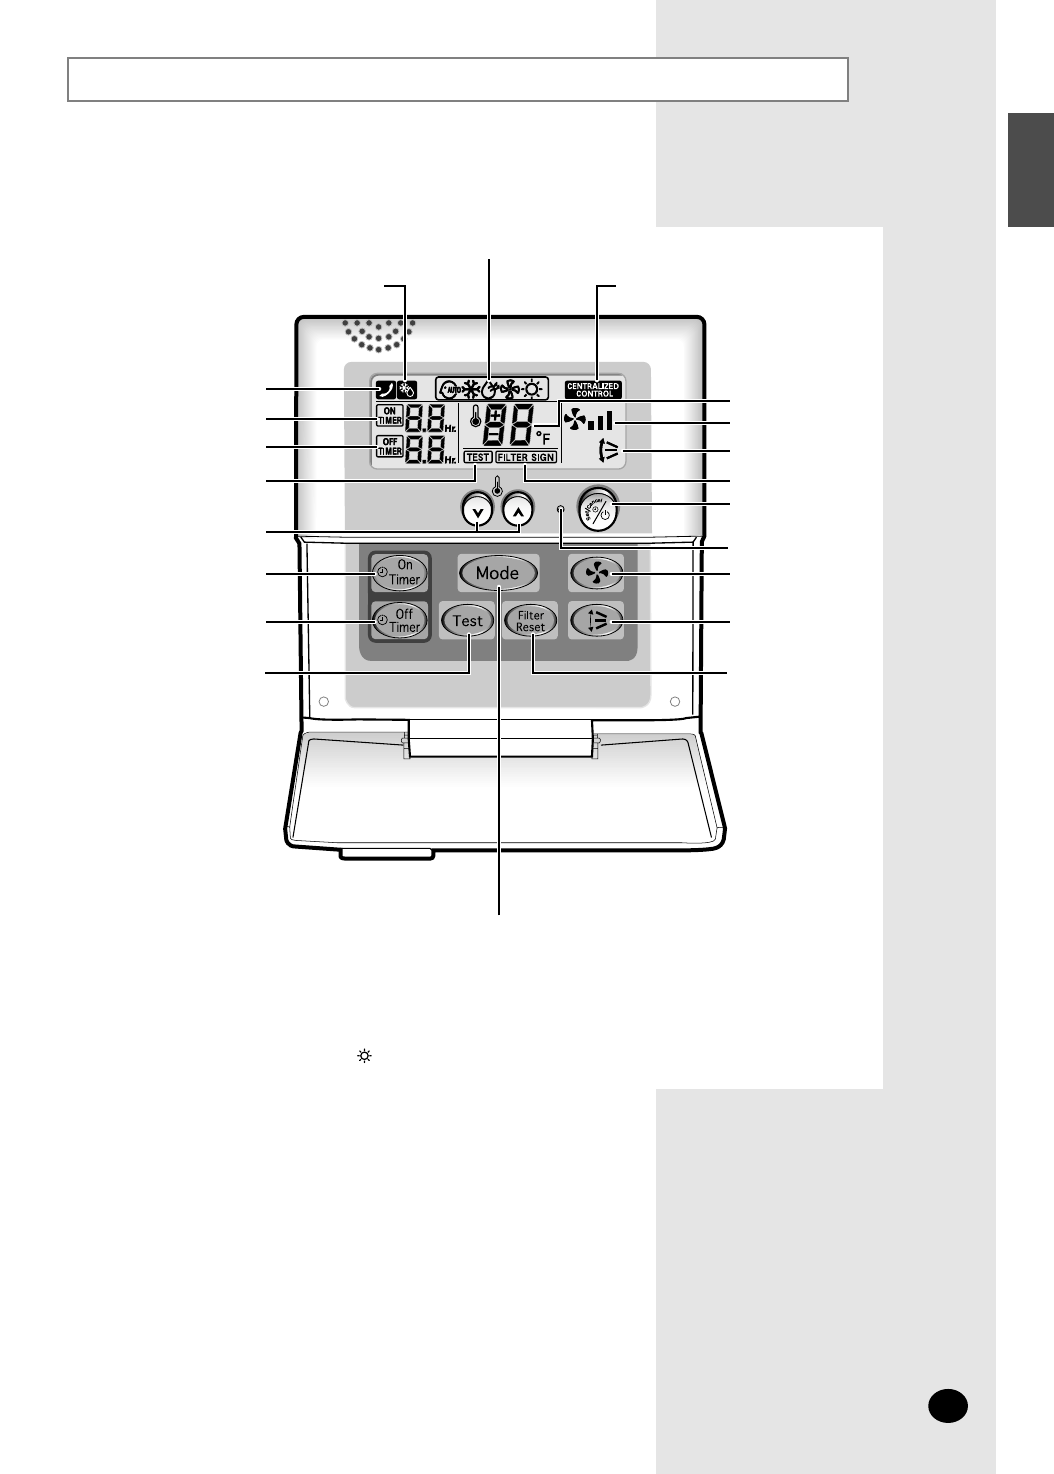 ... page 7 of samsung air conditioner e s f db98 05586a user guide ...